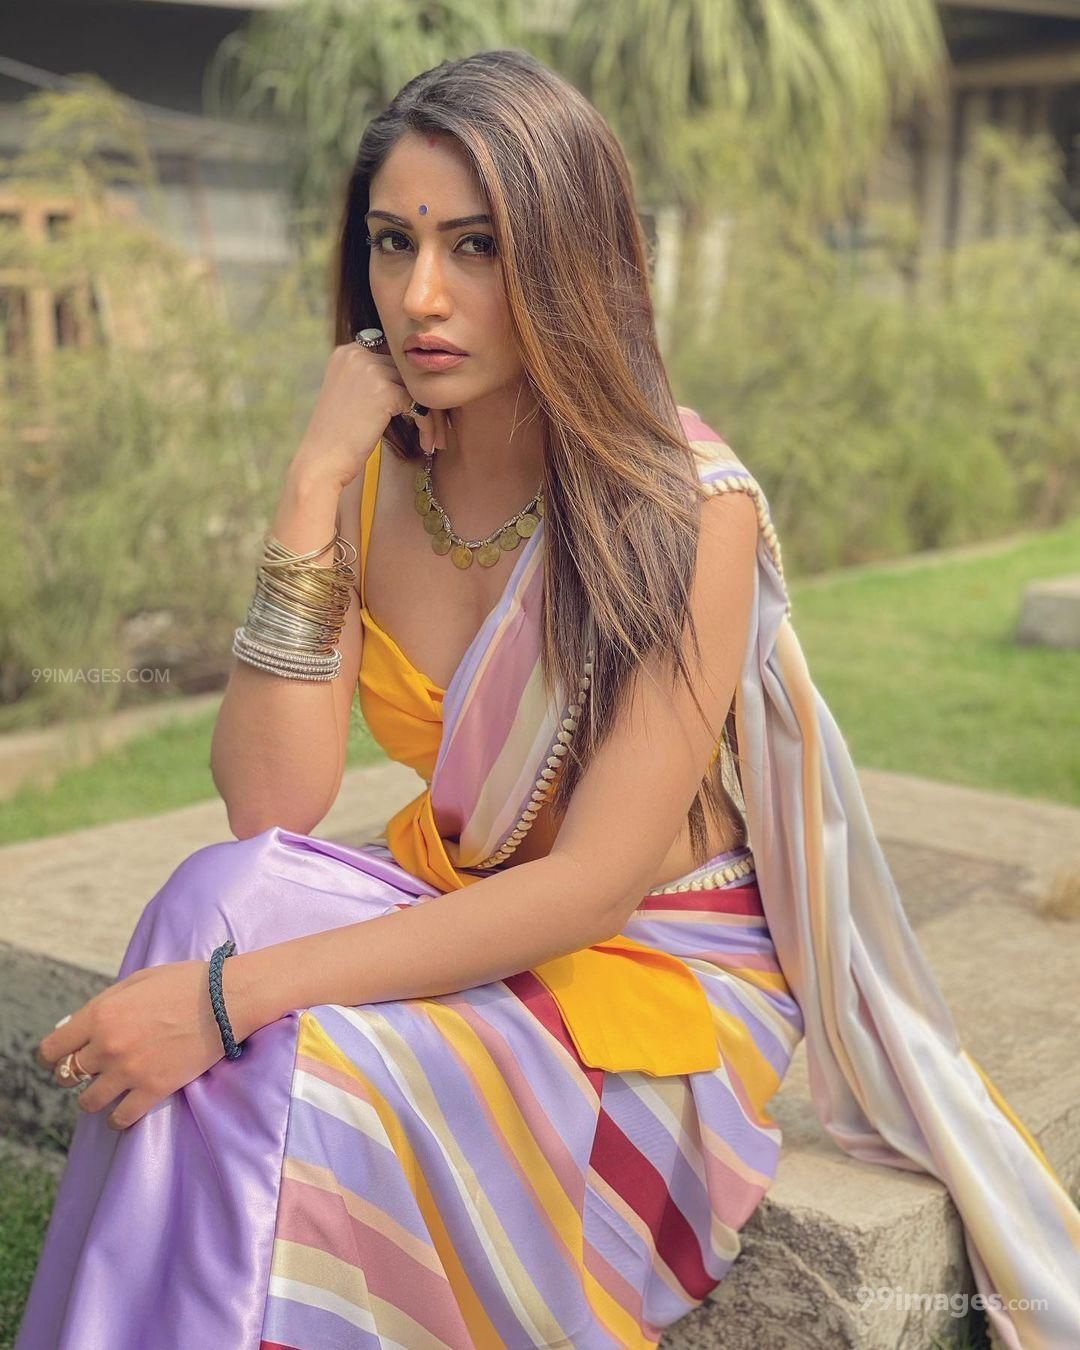 Surbhi Chandna  Hot HD Photos & Wallpapers for mobile Download, WhatsApp DP (1080p) (728236) - Surbhi Chandna